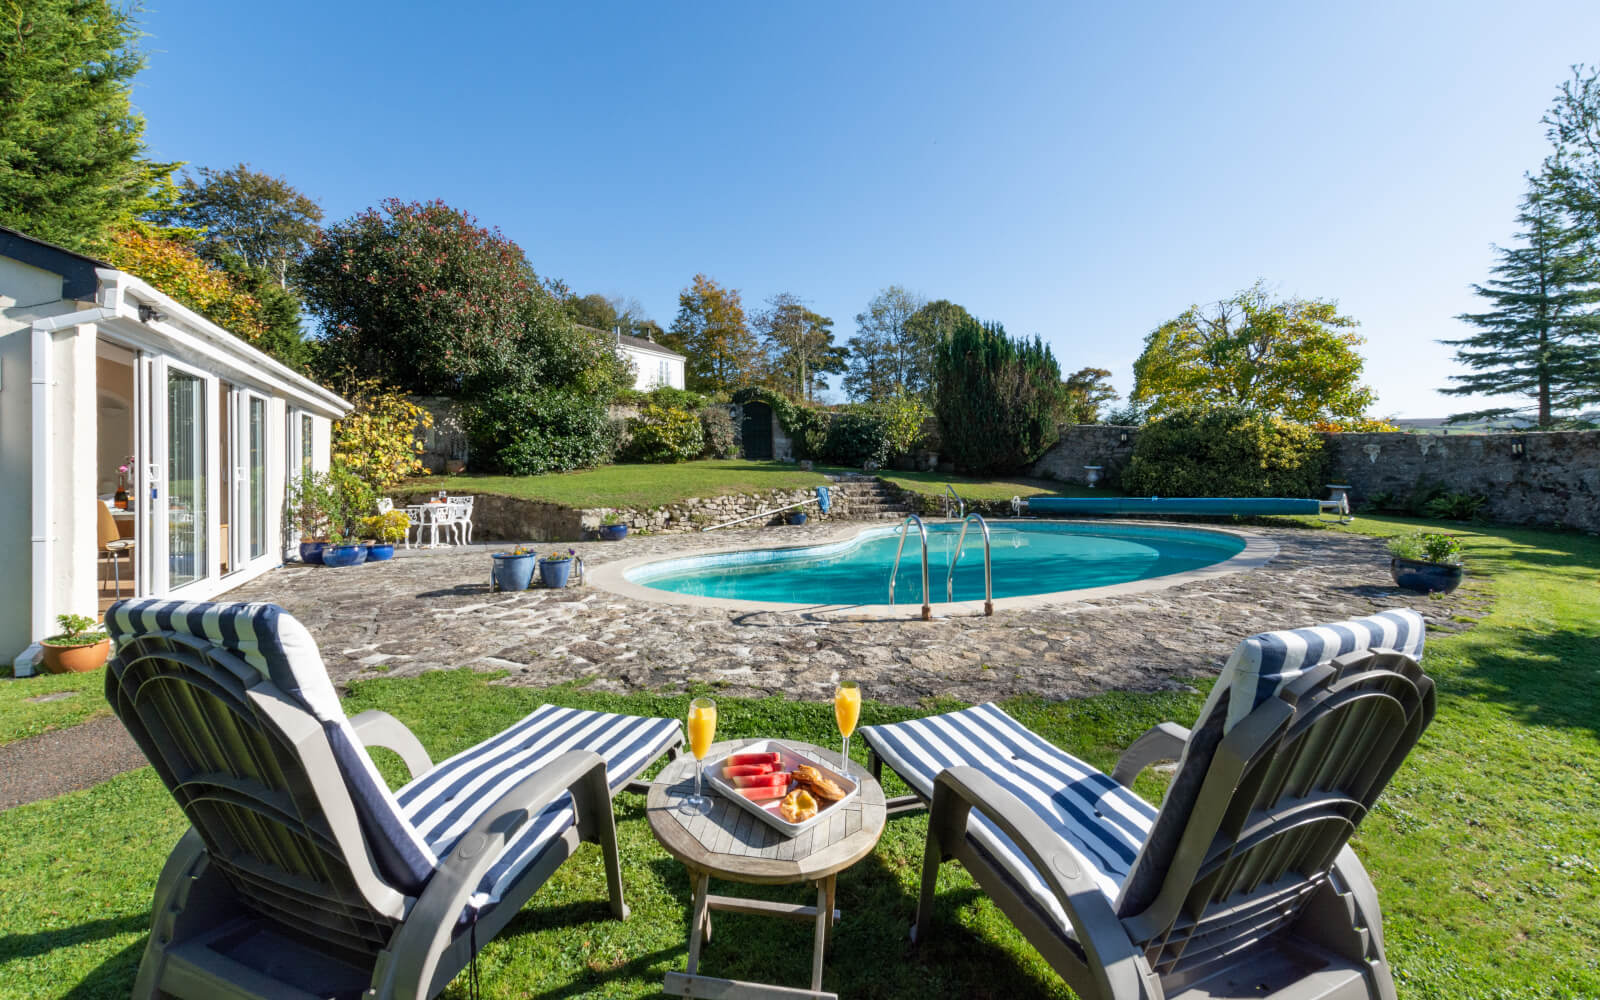 Holiday Cottages With Swimming Pools In Haverfordwest To Rent - Save up to 60%